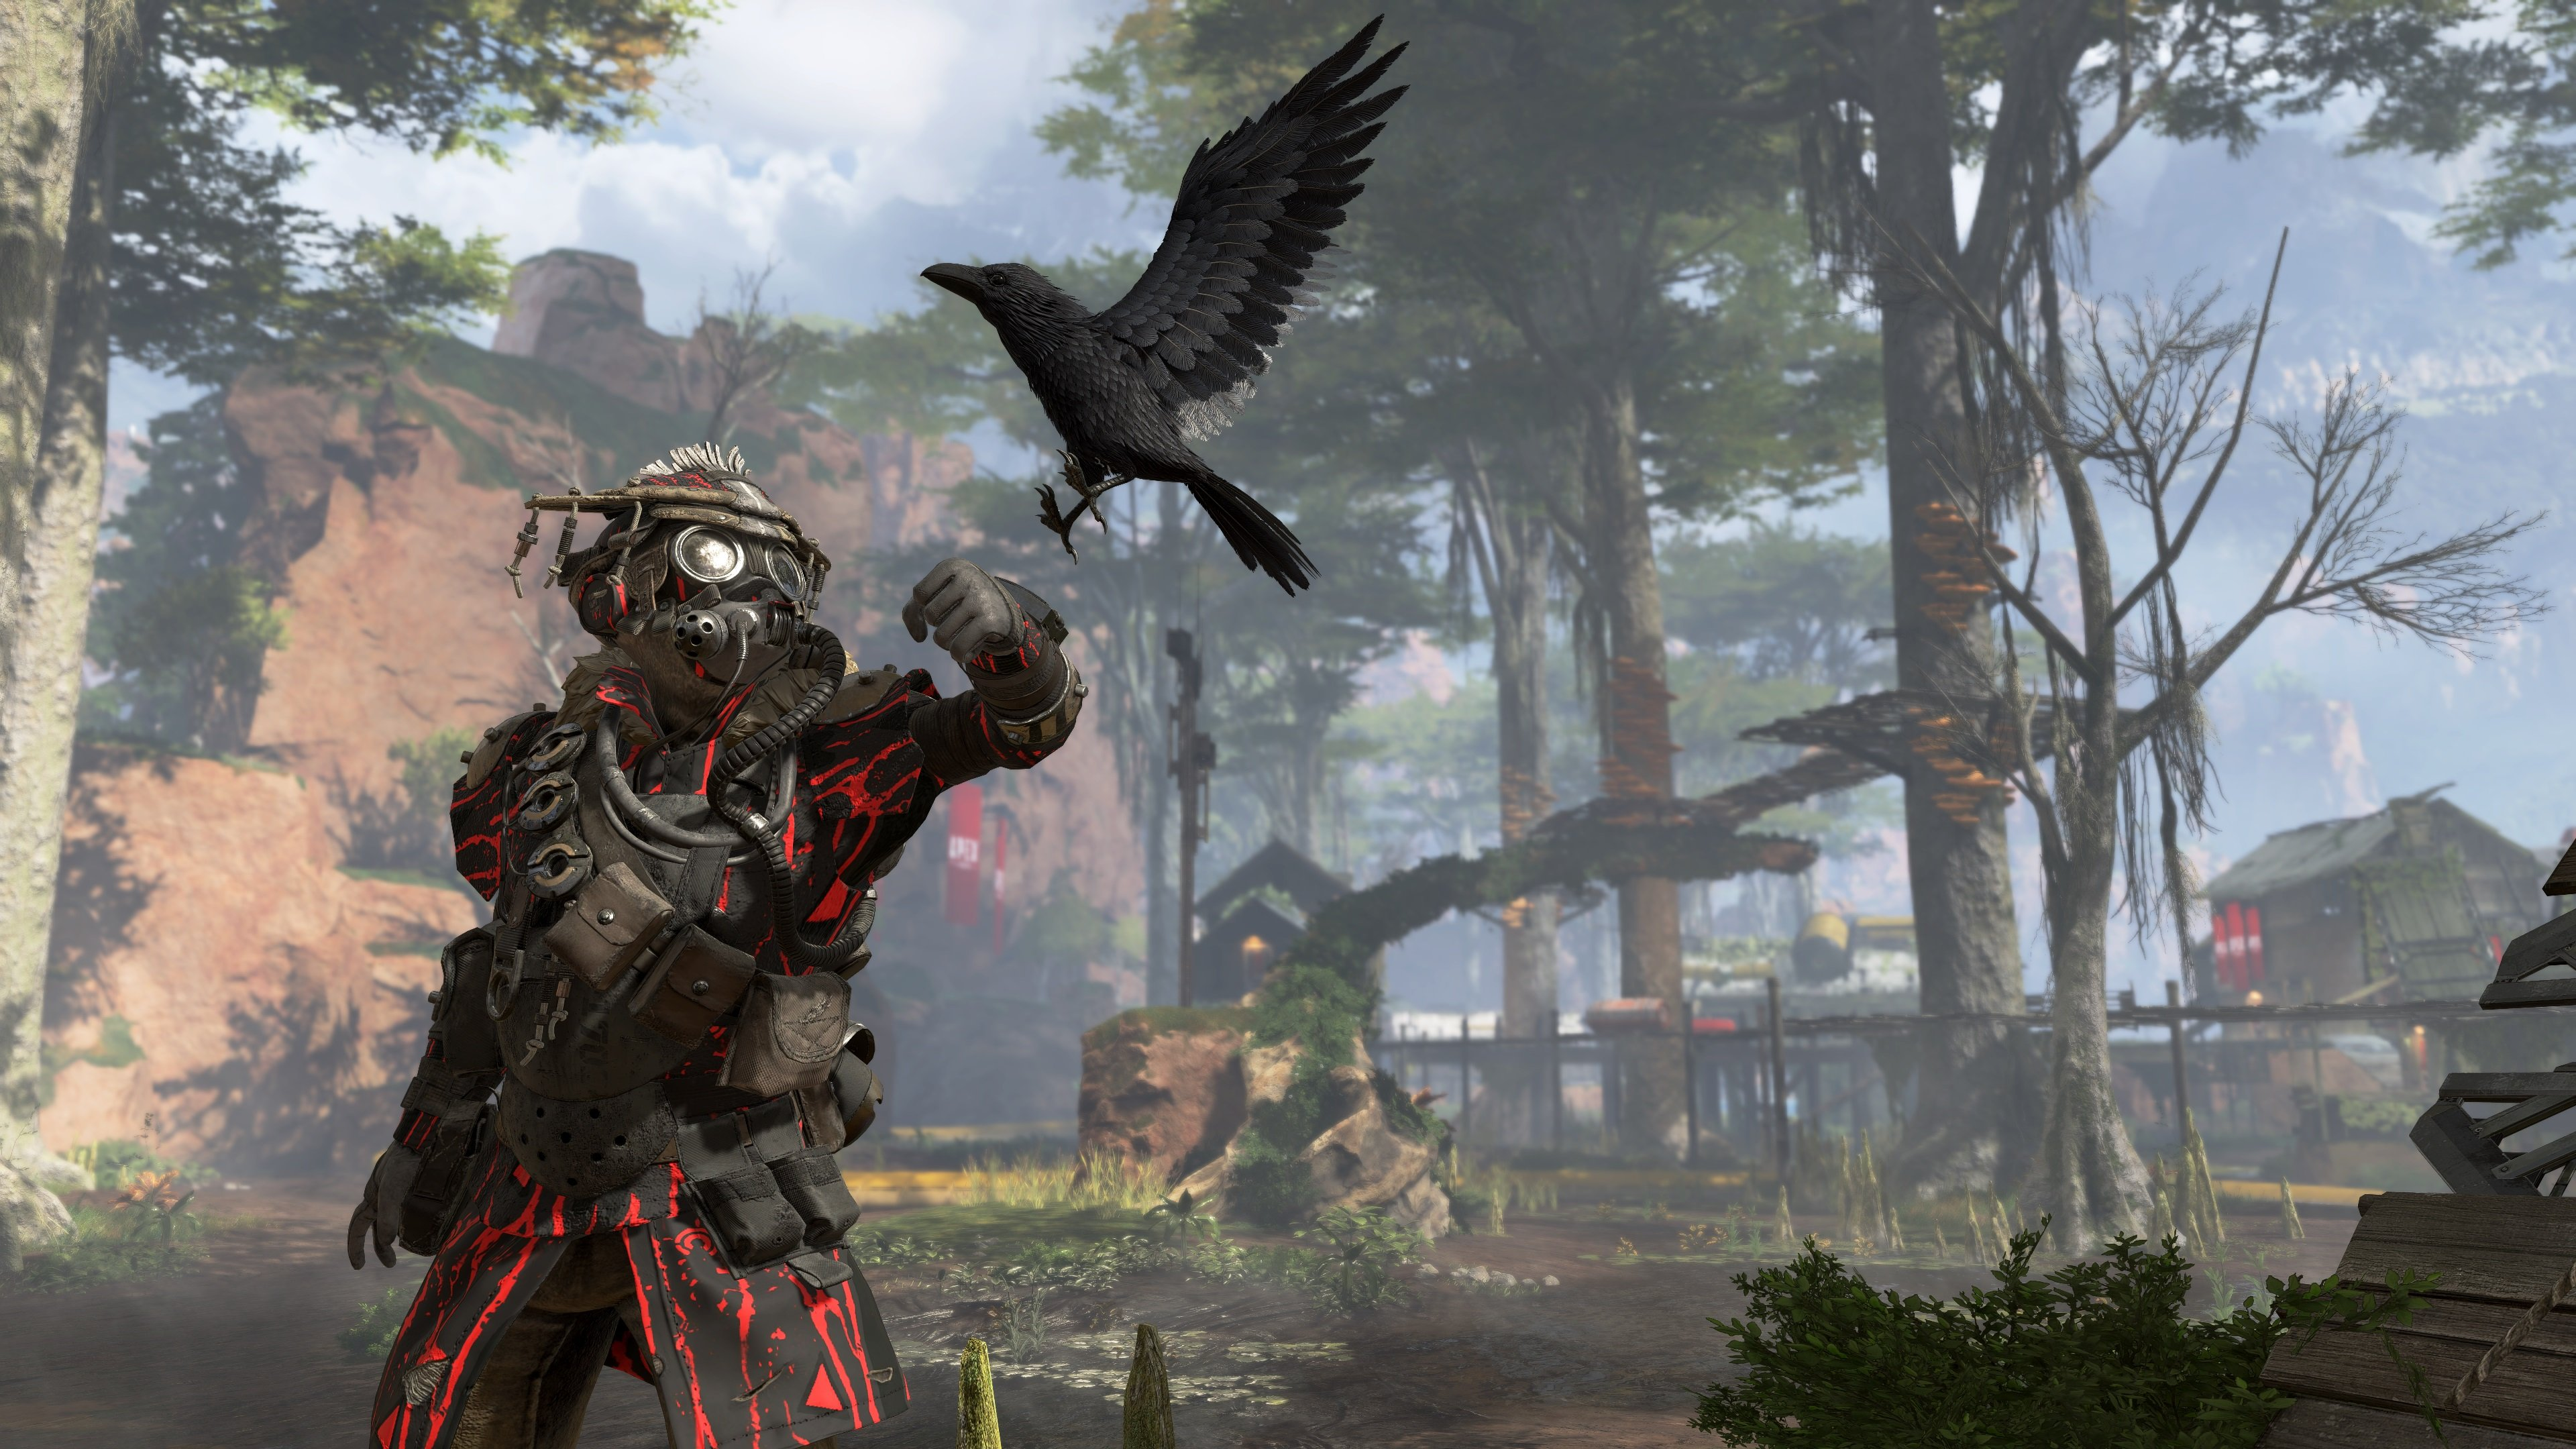 Twitch Prime is giving away Apex Legends skins for Amazon Prime Day